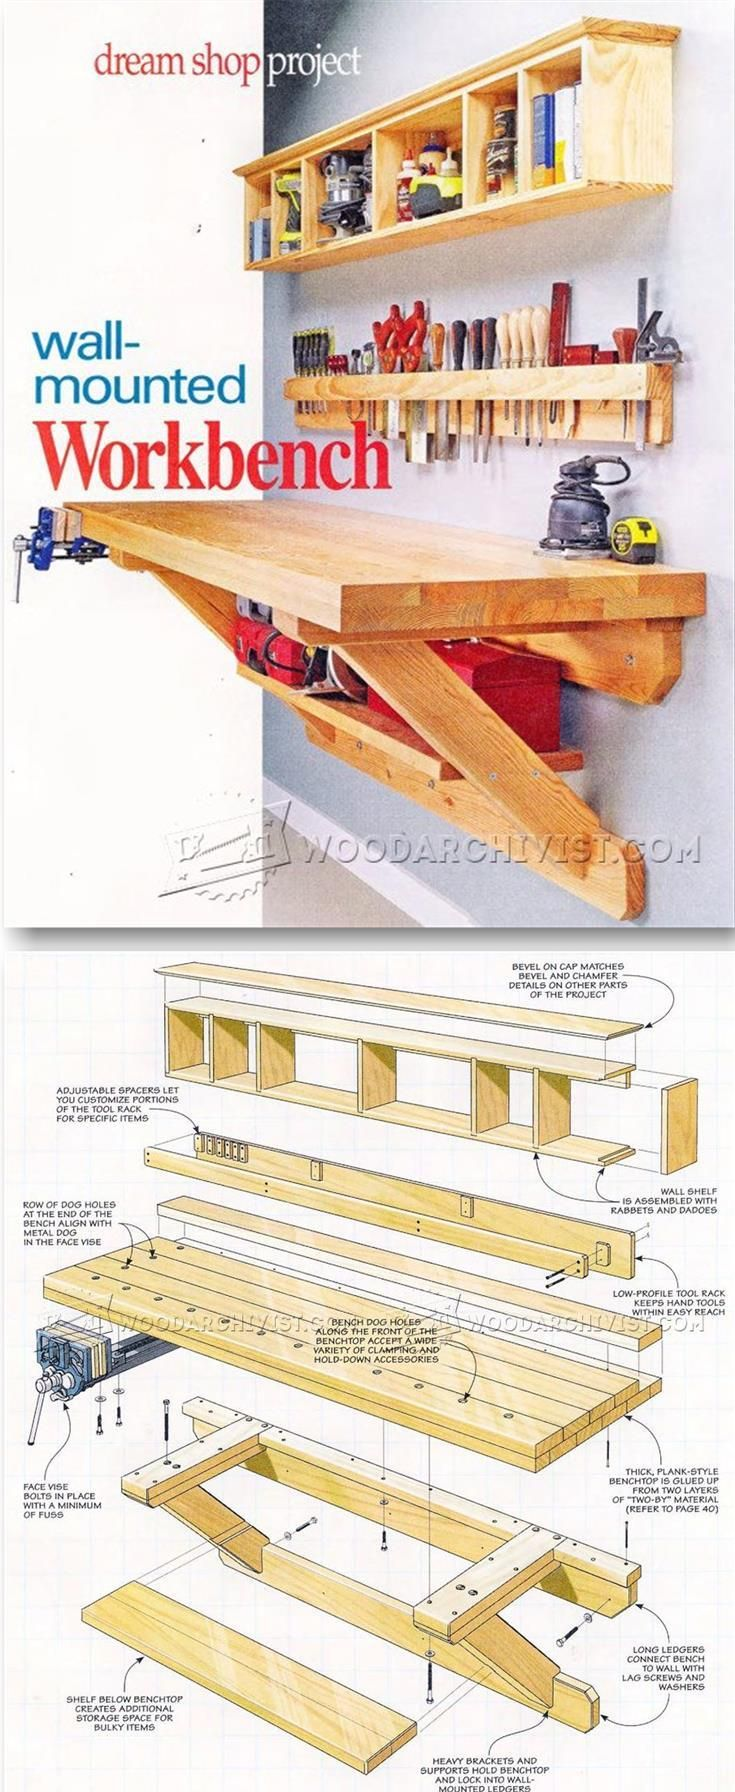 Wall Mounted Workbench Plans Workshop Solutions Projects Tips and – Plans For Building A Workbench In A Garage